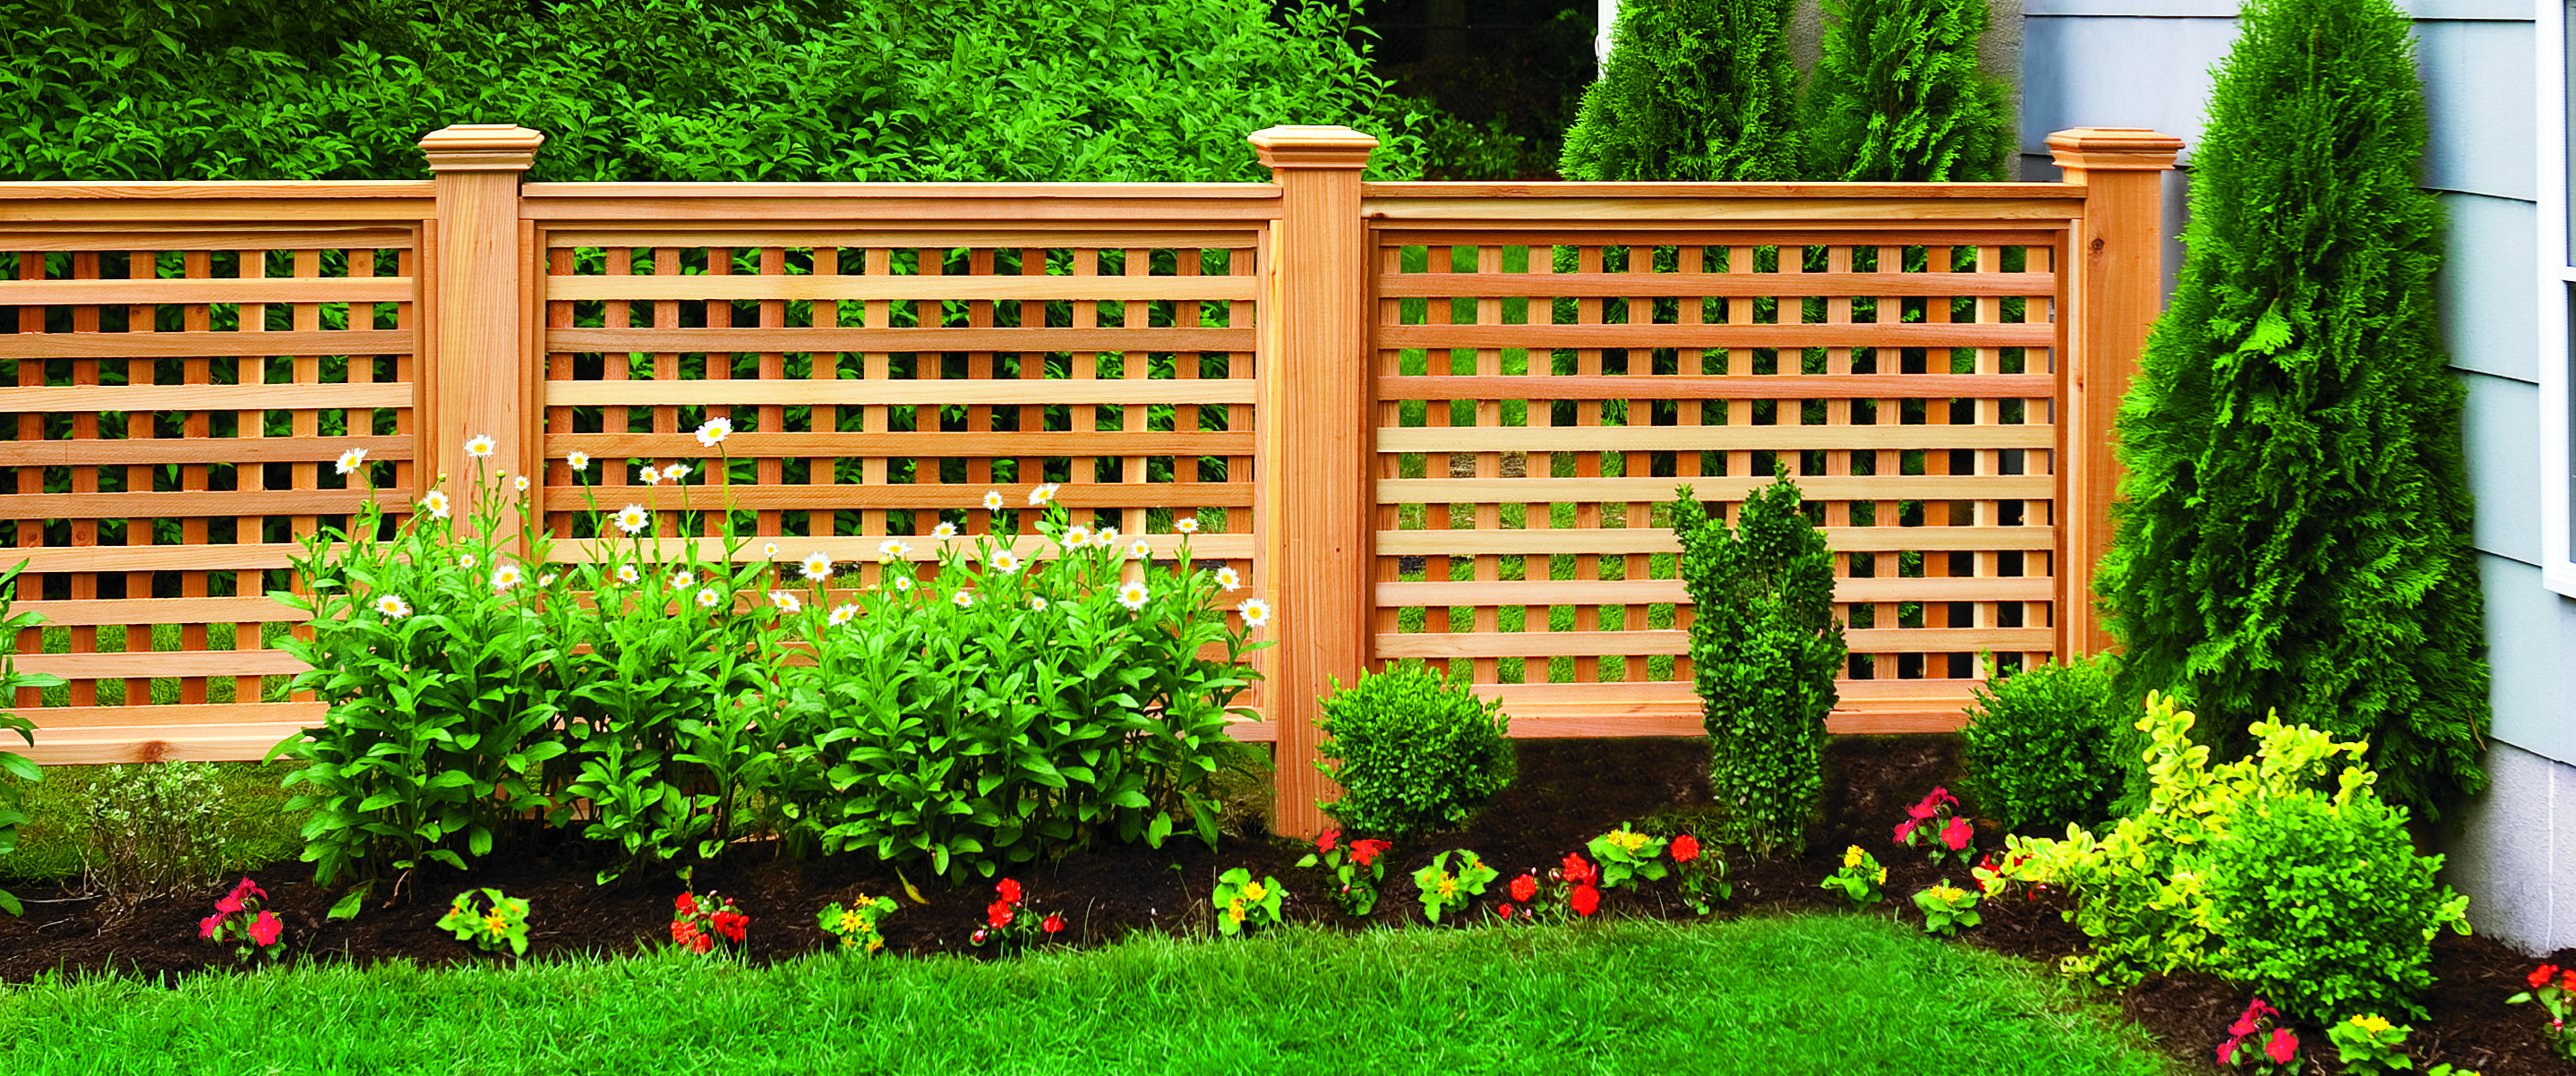 How to Build a Wood Lattice Fence | Fences, Yards and Wood fences